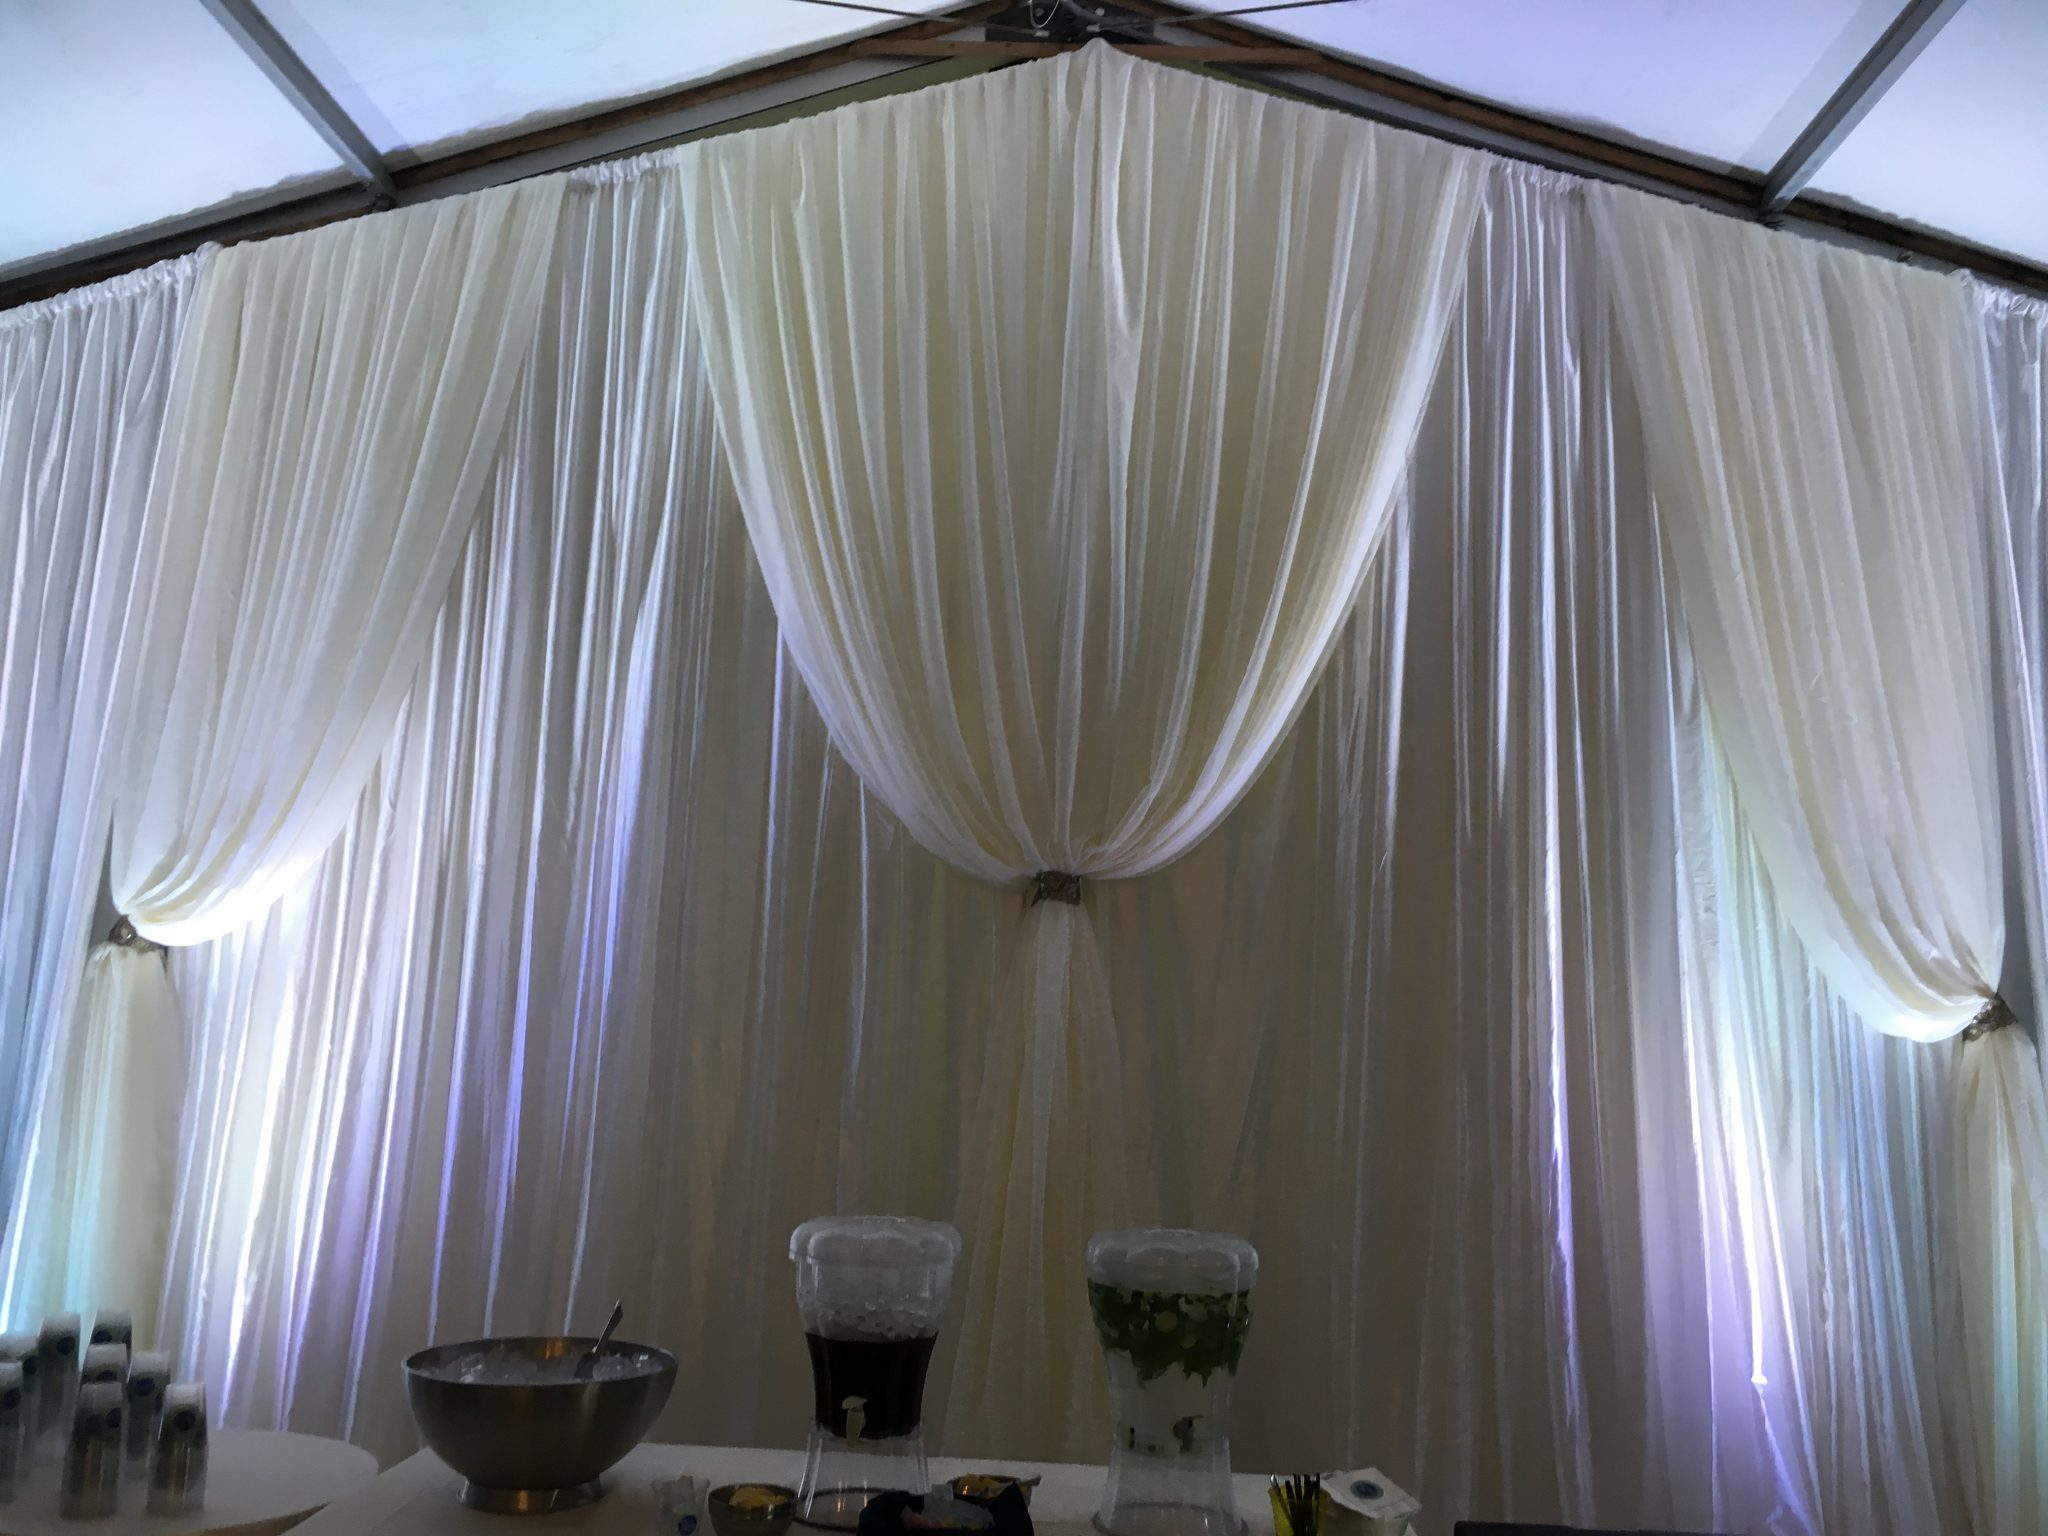 services images draping from eventure designs ceiling event drapes canopies toronto